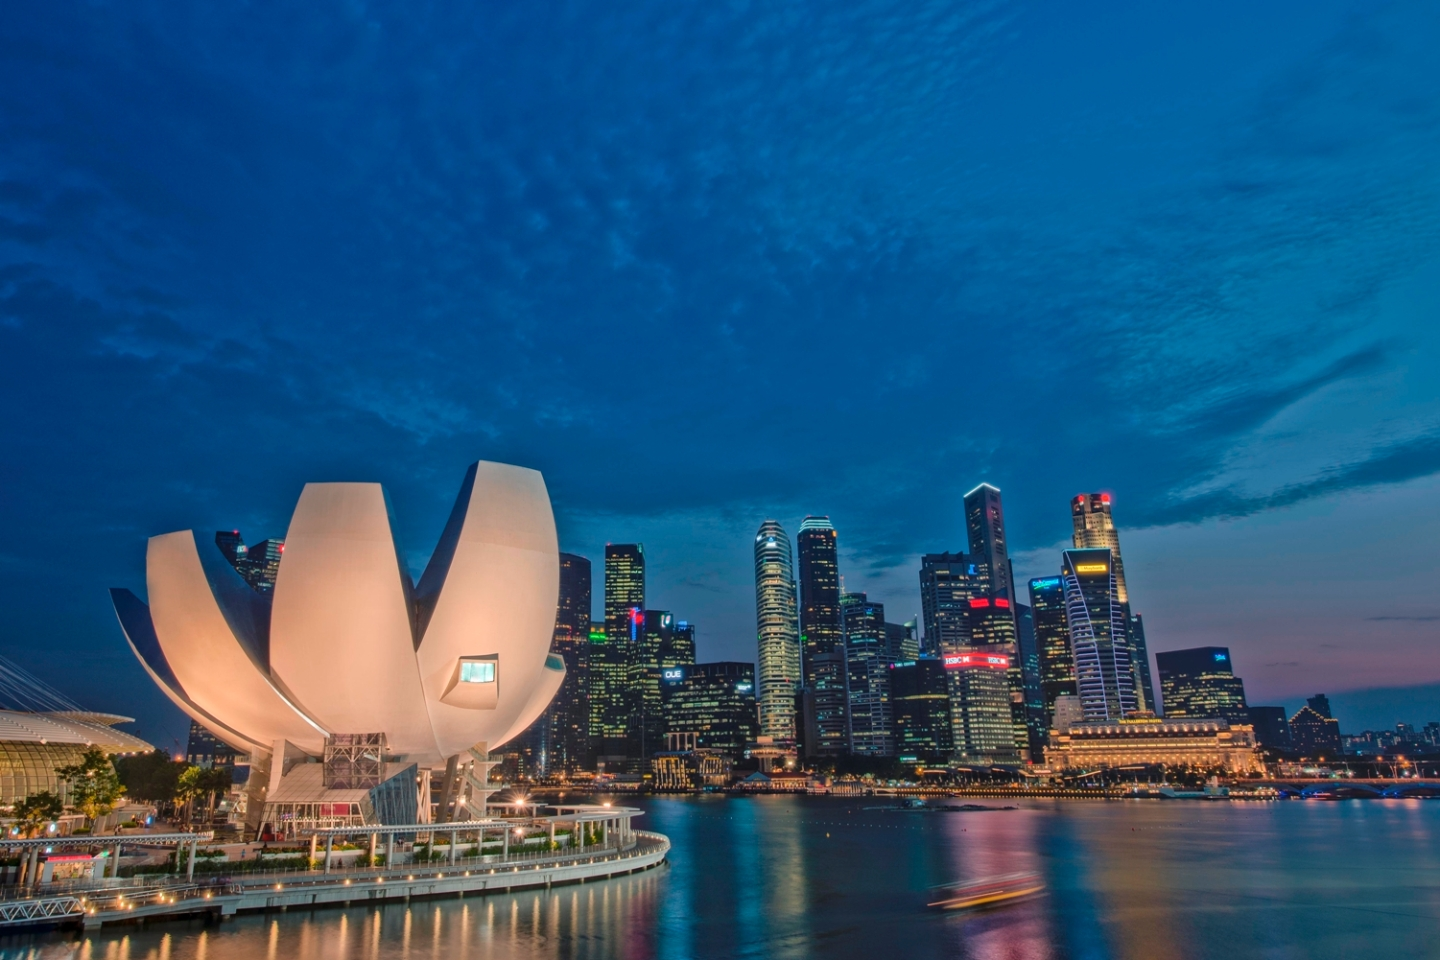 ArtScience Museum Panoramic (Credit to MBS)